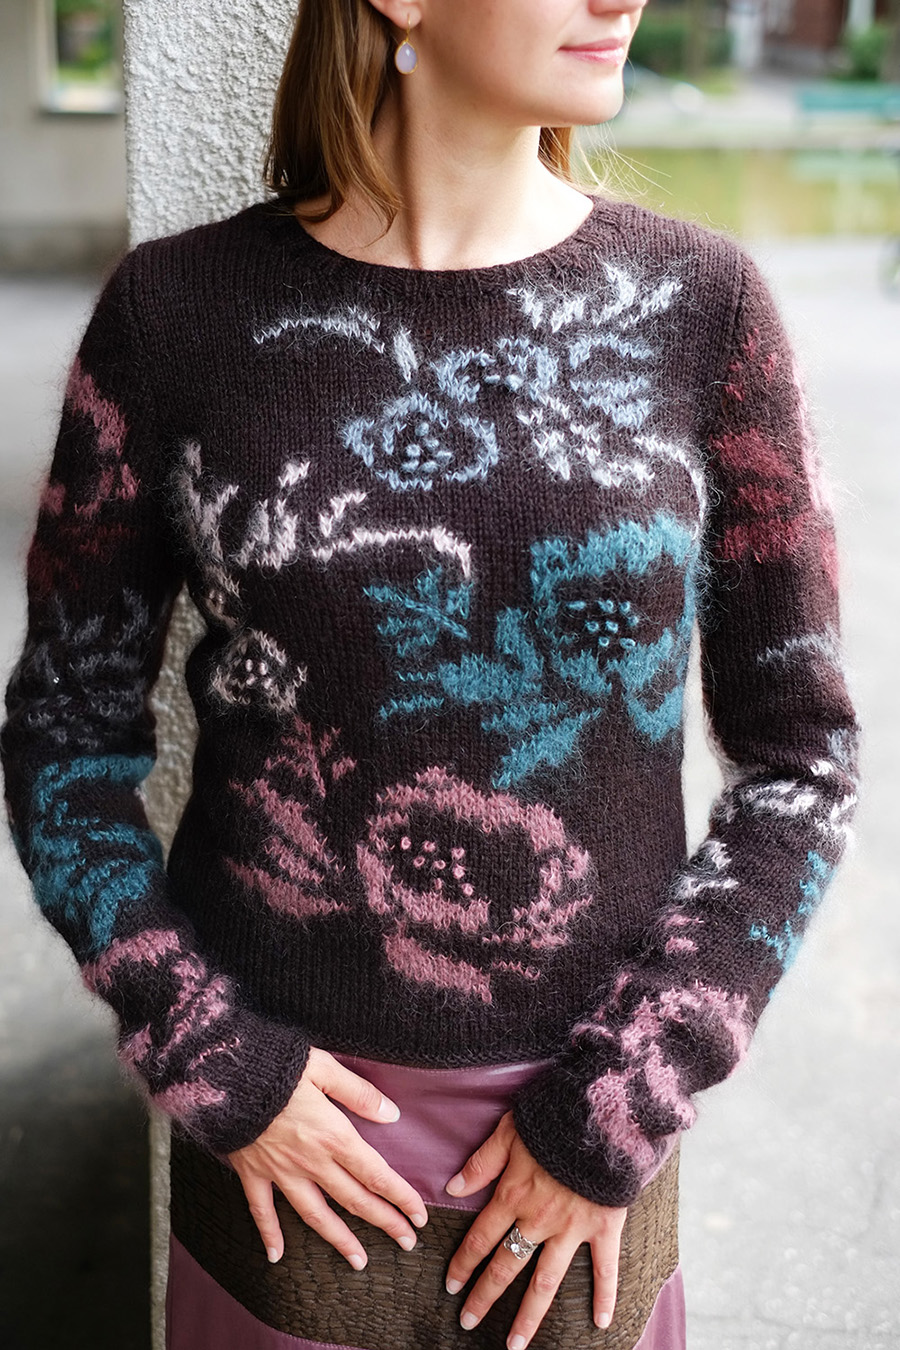 Armenia by Marie Wallin, knit by Dayana Knits